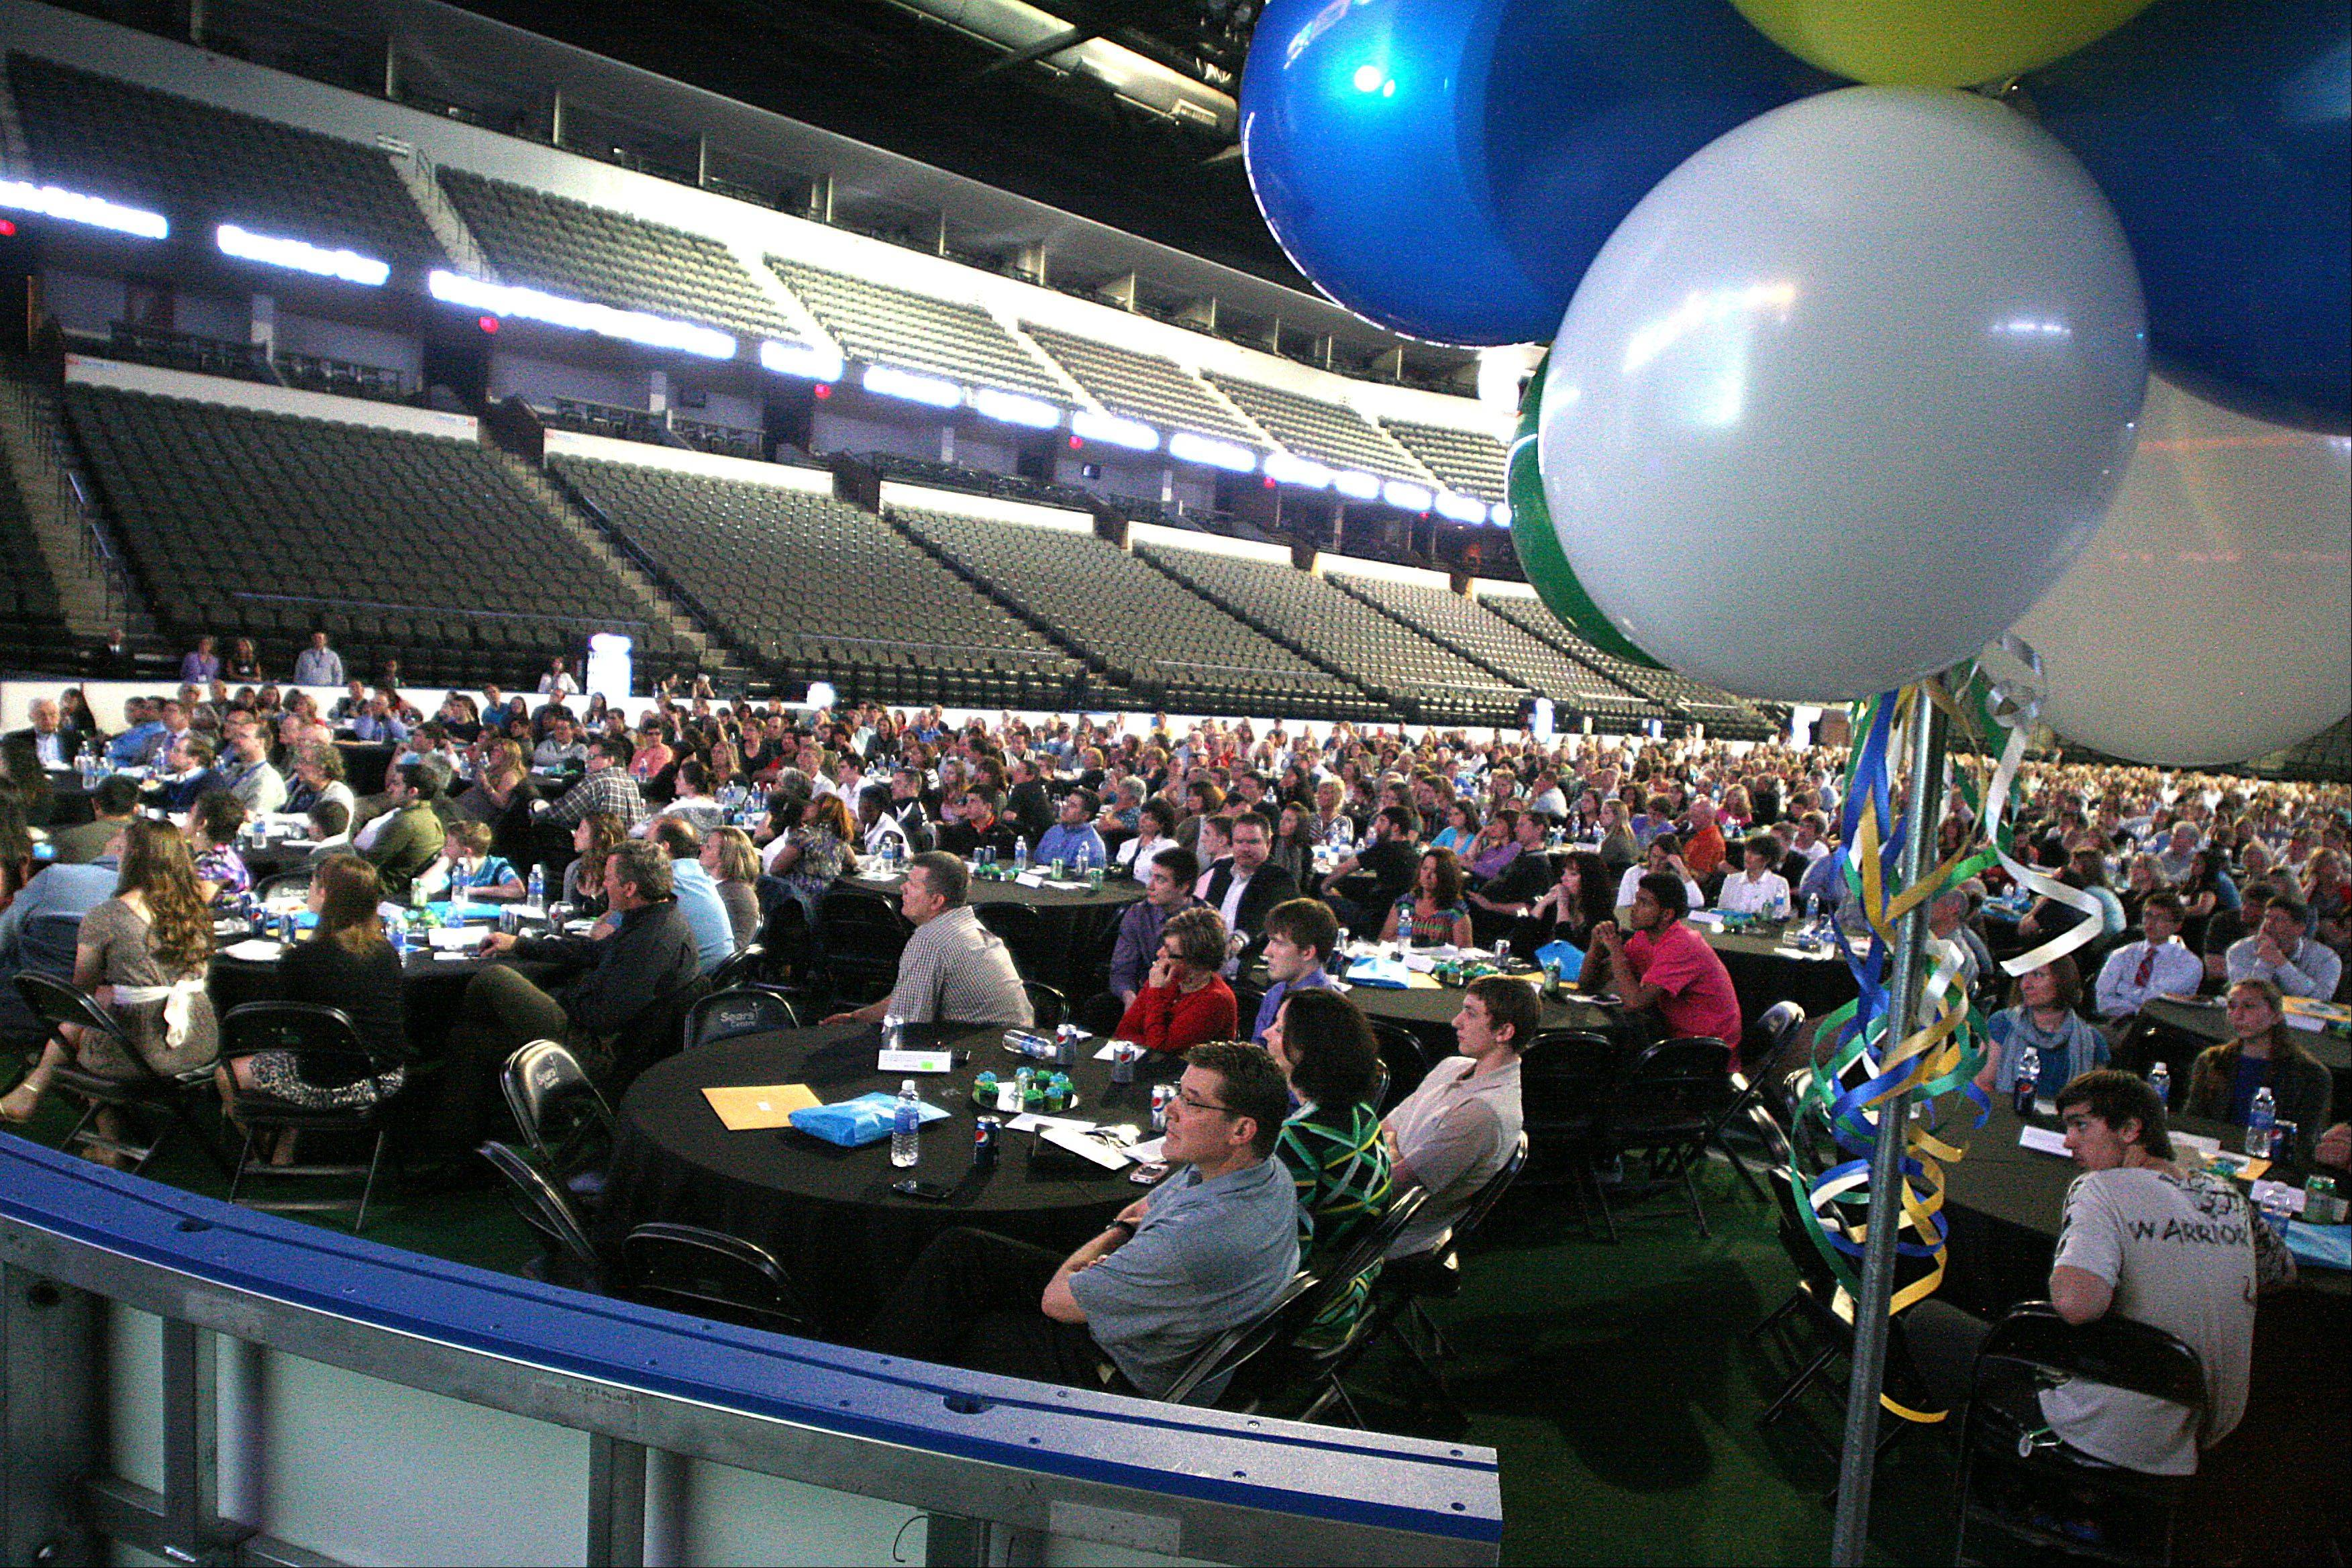 Stdent-athletes and their families participate during the Daily Herald Prep Sports Excellence Awards Ceremony at Sears Centre Arena in Hoffman Estates on Sunday.